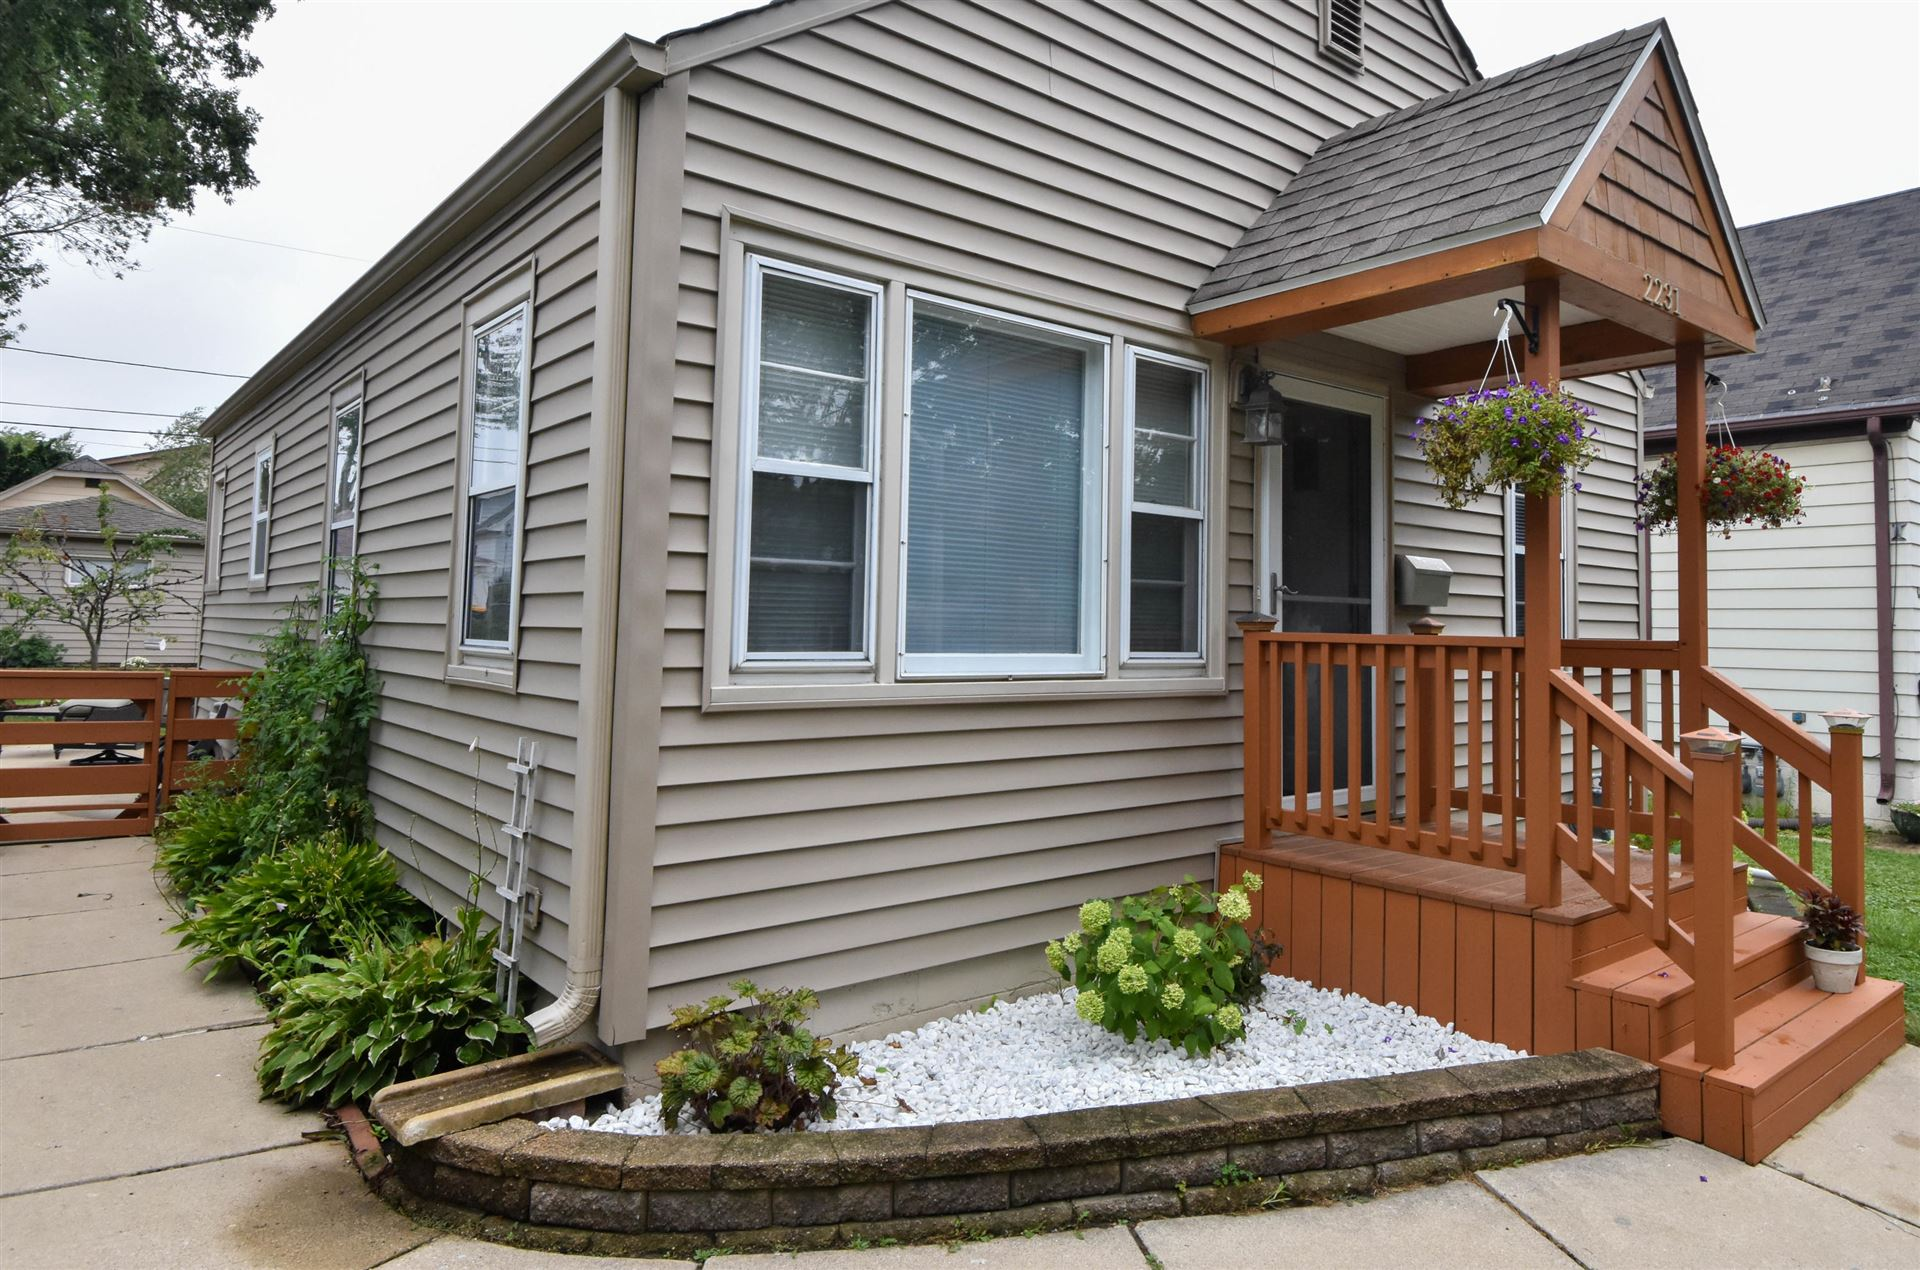 2231 S 65th St, West Allis, WI 53219 - #: 1703631